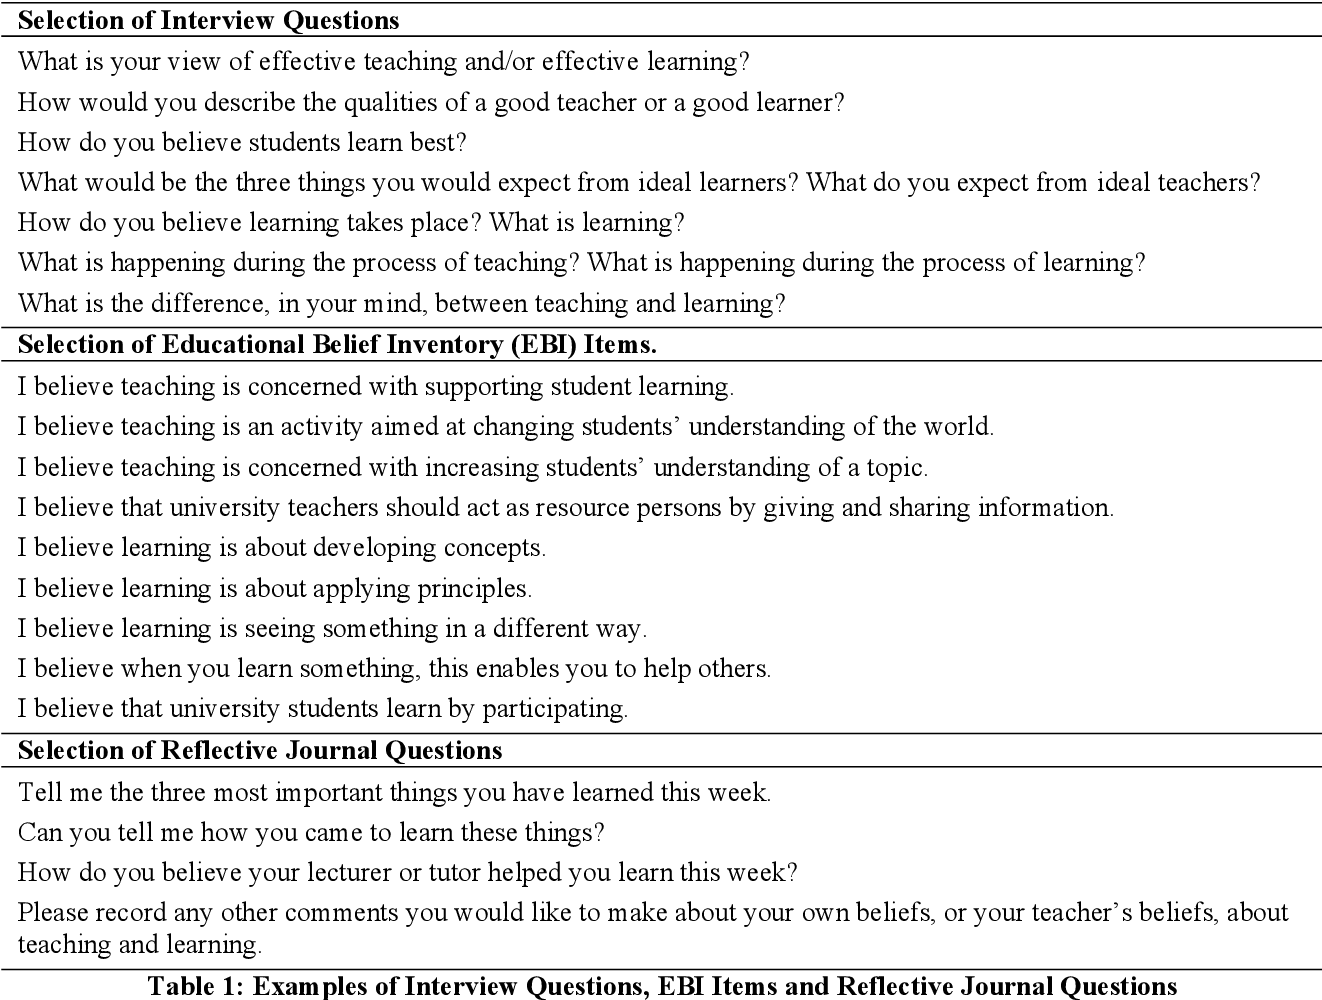 Table 1 from Educational Beliefs of Higher Education Teachers and